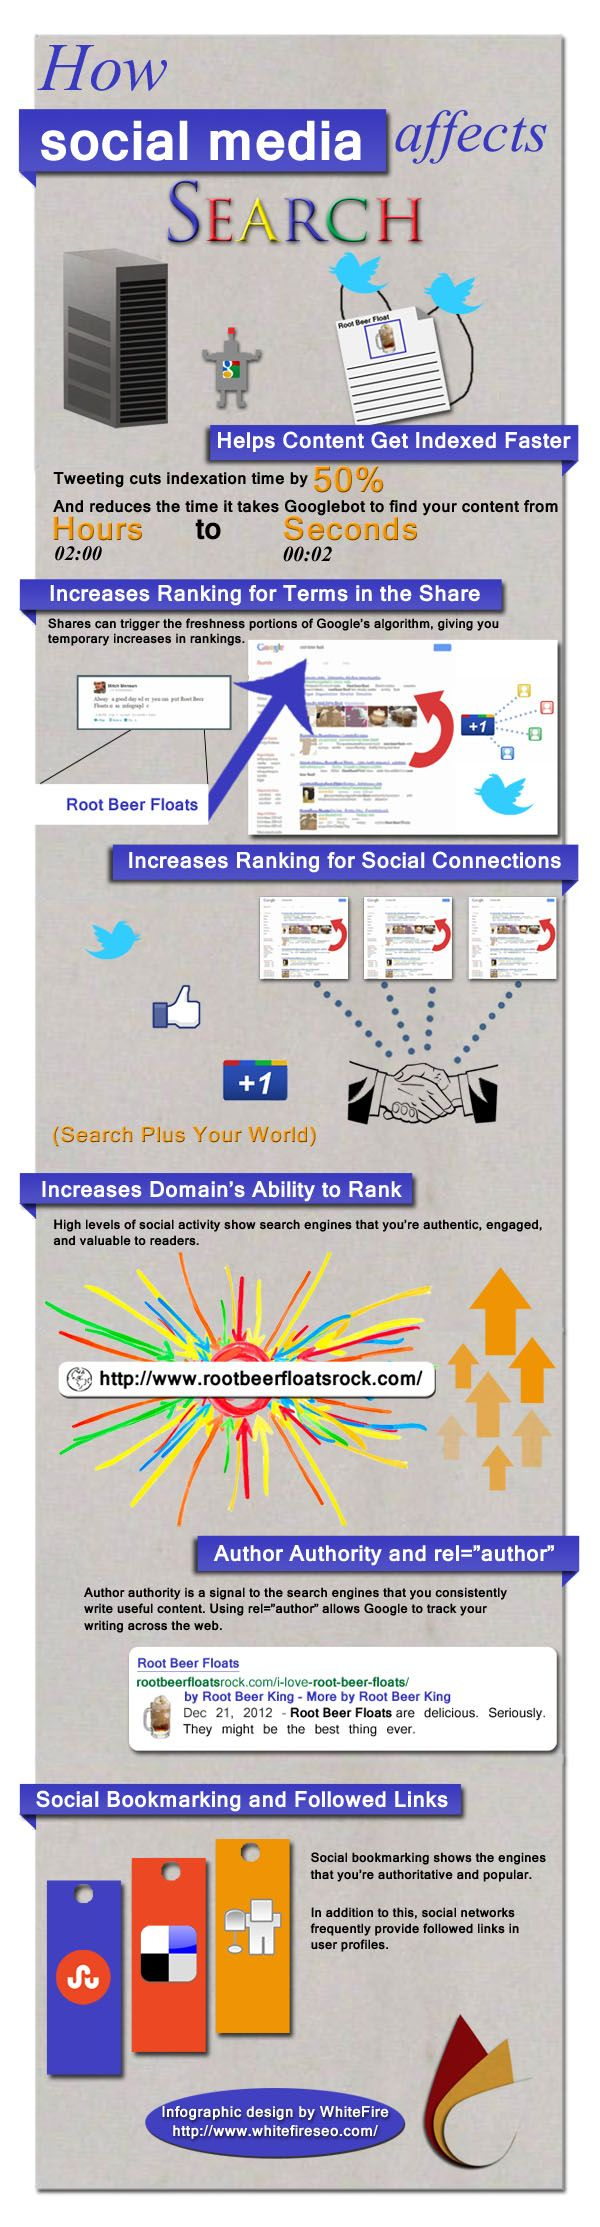 #Infographic on how Social Media and #SEO Influences Search